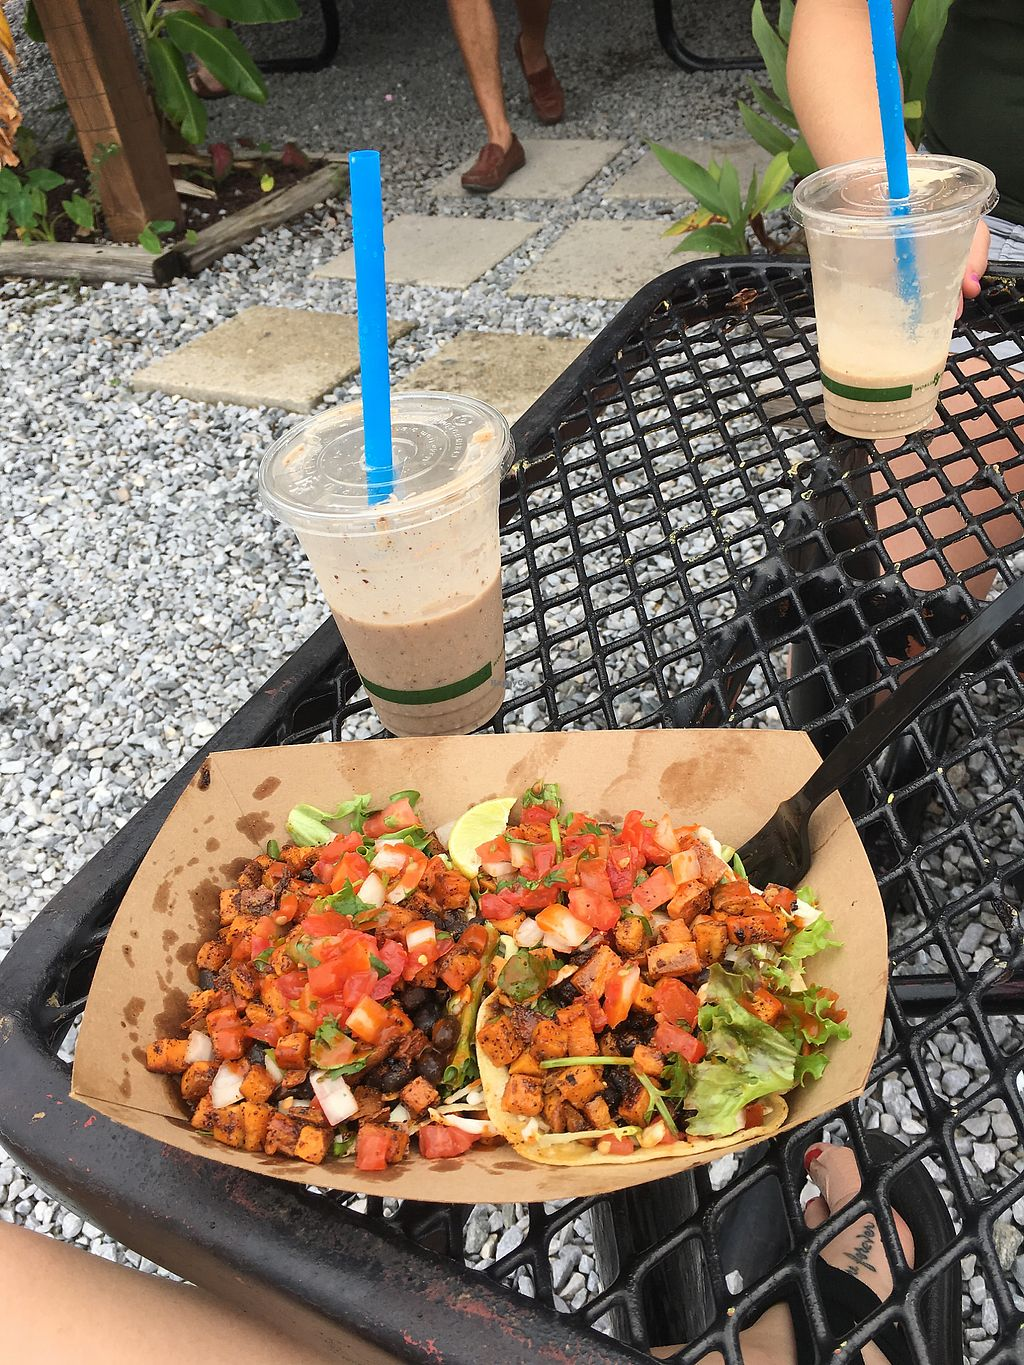 "Photo of Finn's Island Style Grub  by <a href=""/members/profile/Kirstinaureal"">Kirstinaureal</a> <br/>veggie tacos no white sauce  <br/> July 29, 2017  - <a href='/contact/abuse/image/59446/286342'>Report</a>"